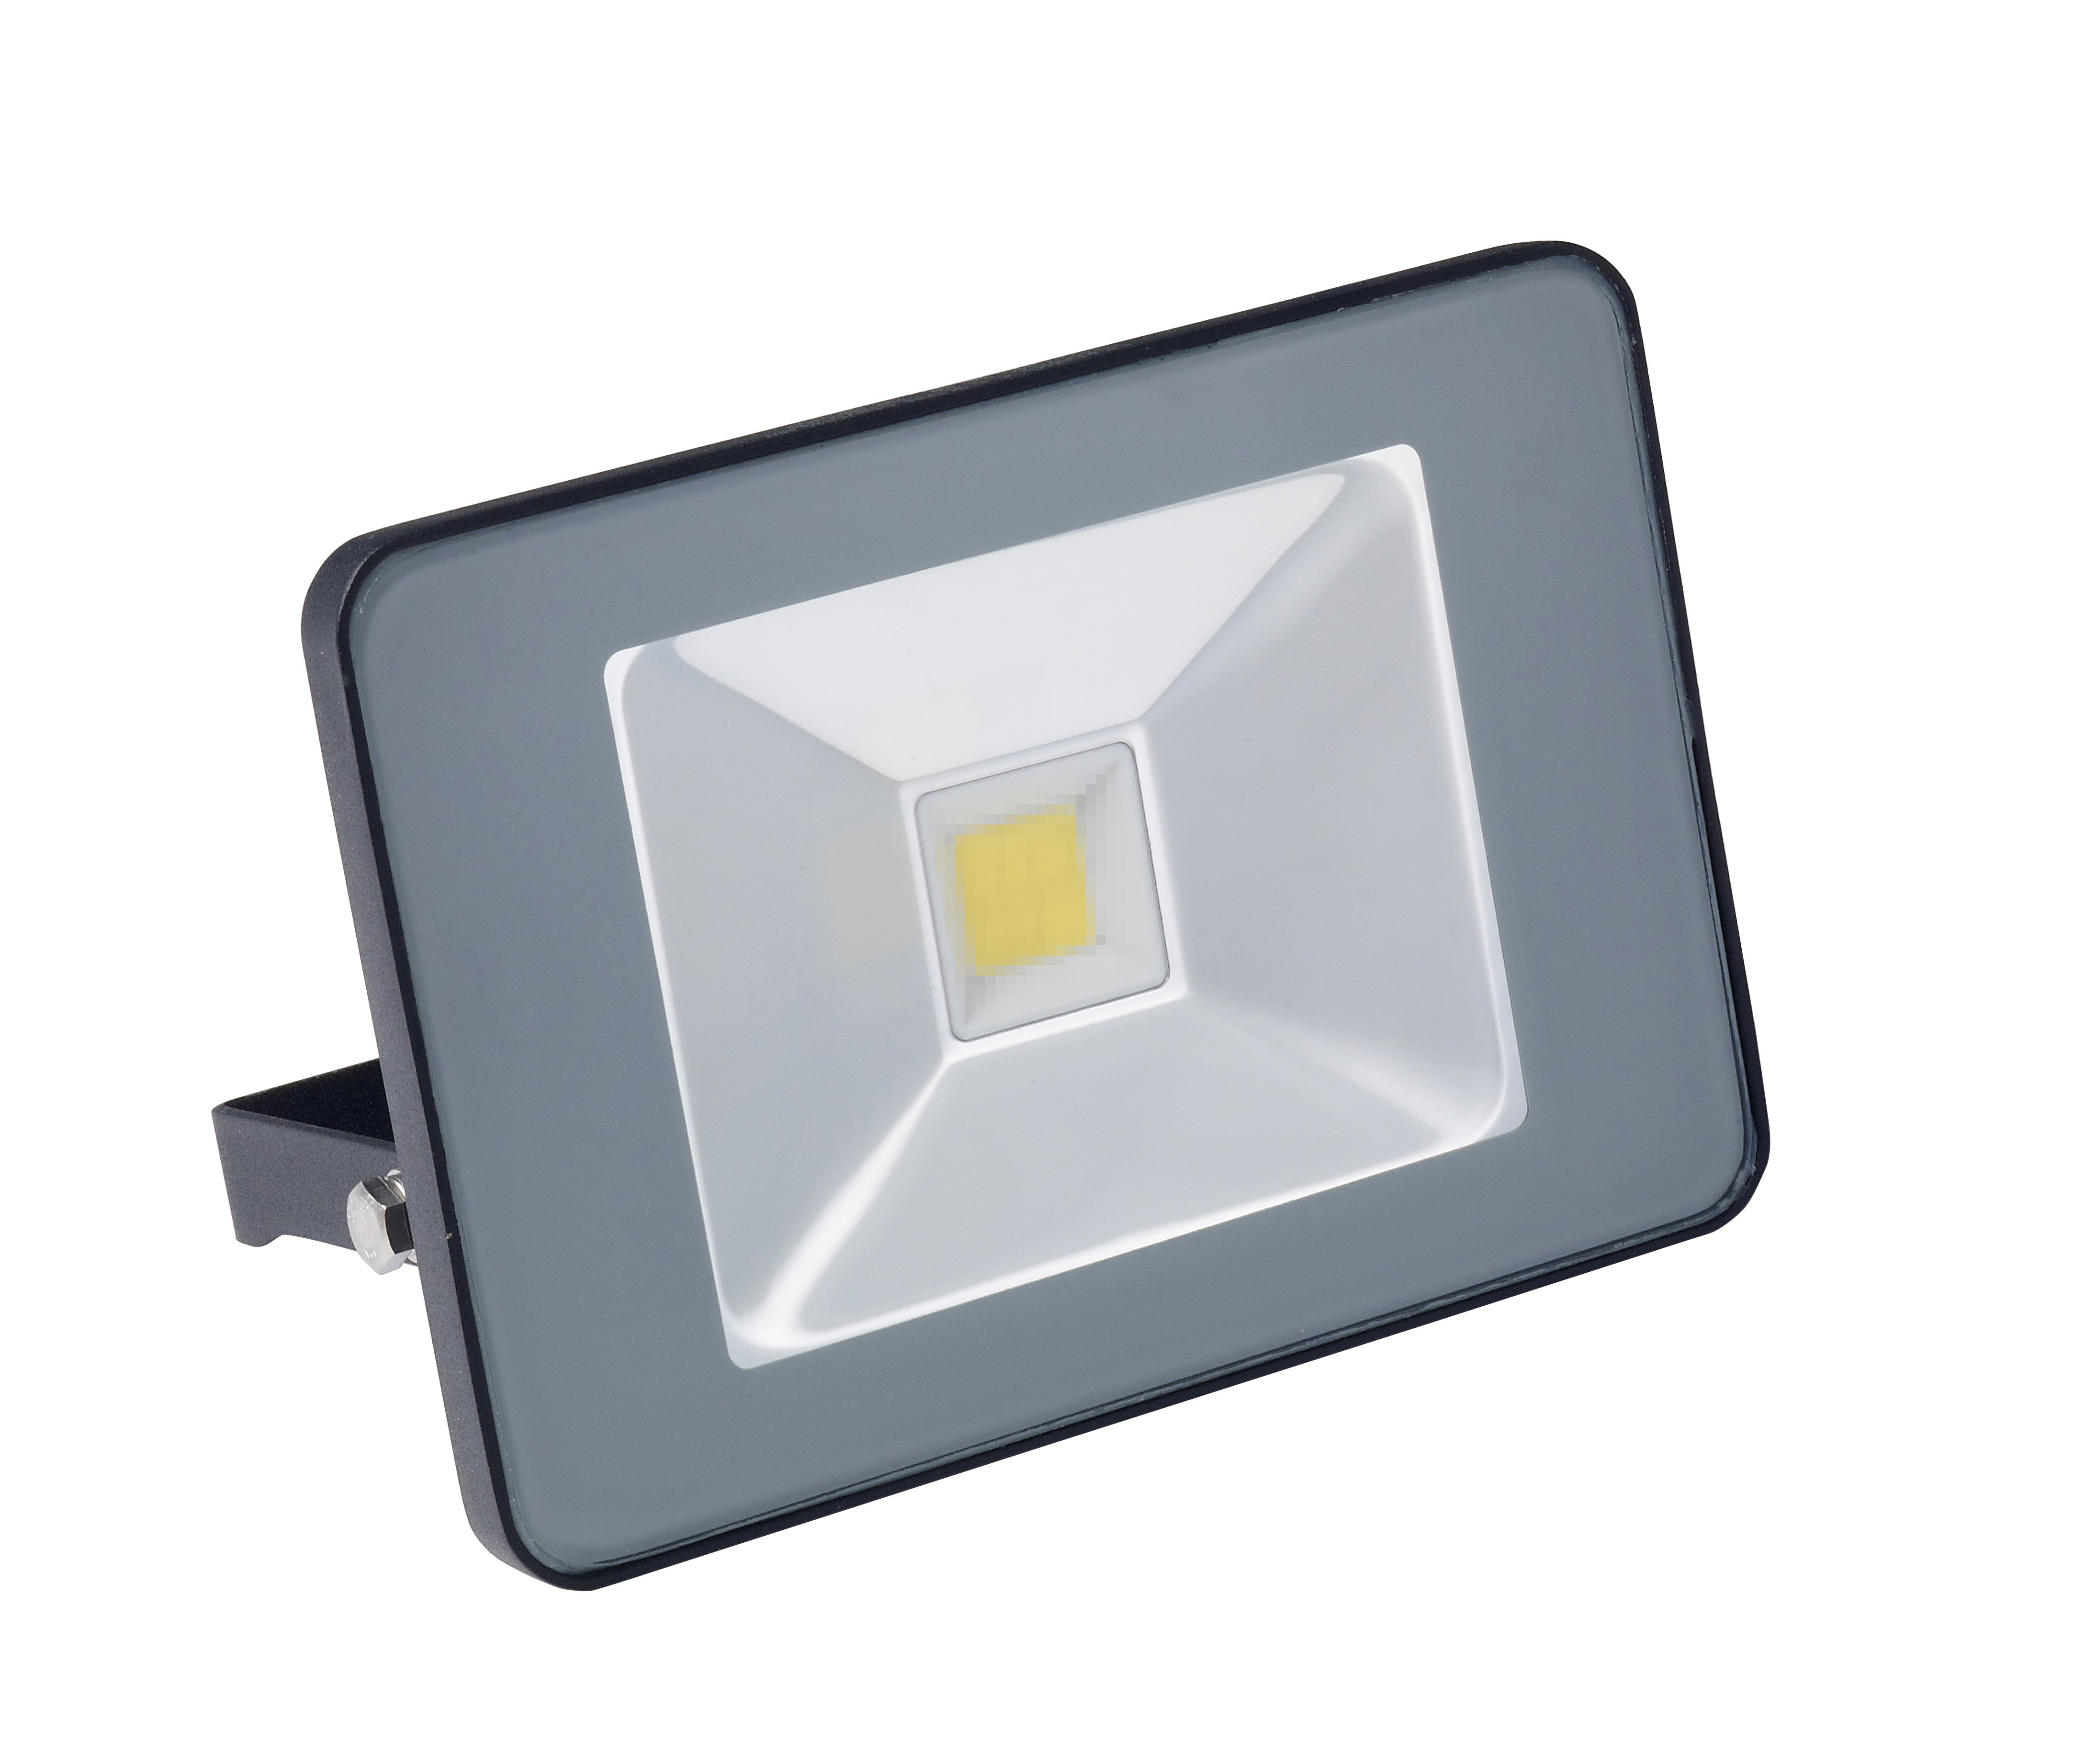 light floodlight replacement kitchen lighting ideal amazon white liroyal halogen flood home led co warm uk dp smd for